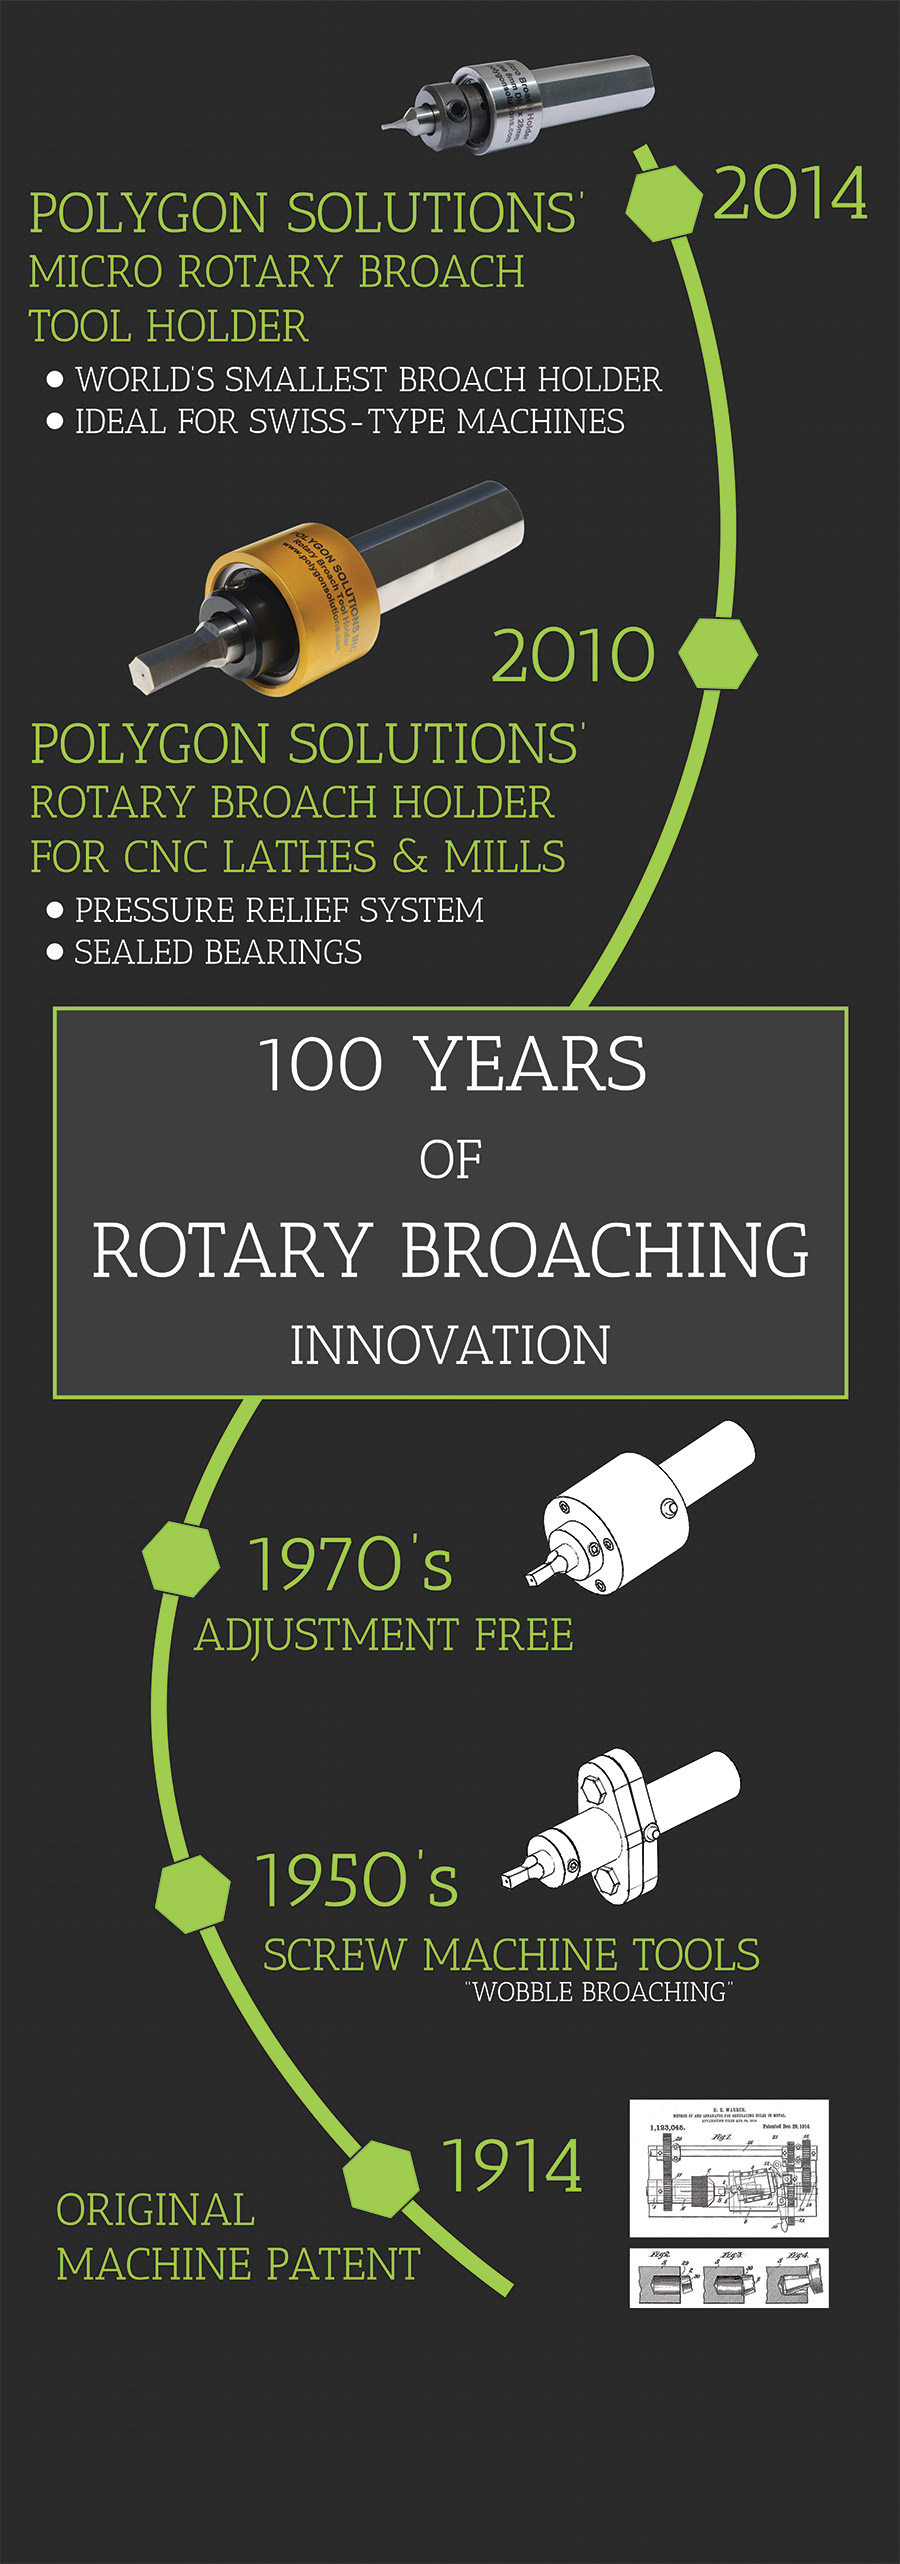 100 Years of Rotary Broaching Innovation